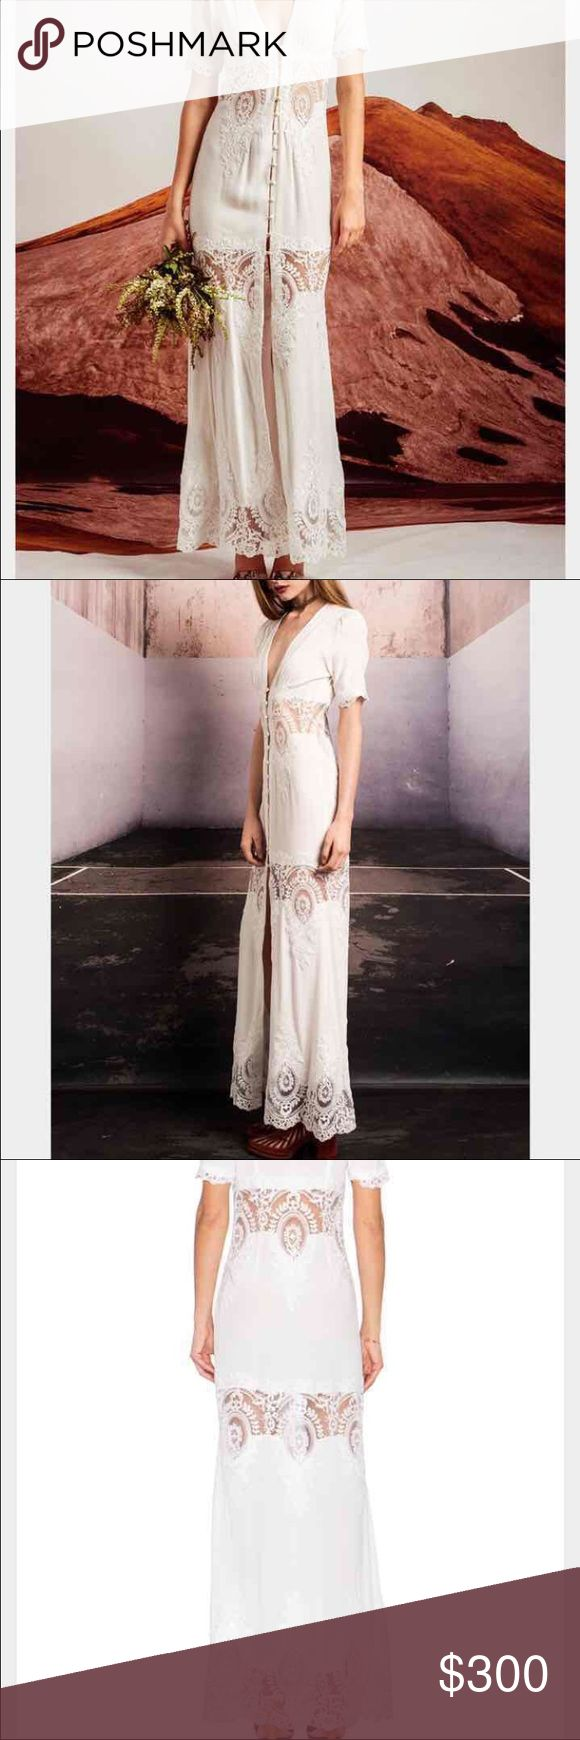 Stone cold fox Octavia white lace gown NWT This gown is absolutely gorgeous! I lost weight and was unable to wear it to one of my bridal showers. It fits a size 6-10 women. Great for engagement shoot or anything wedding! Stone Cold Fox Dresses Maxi